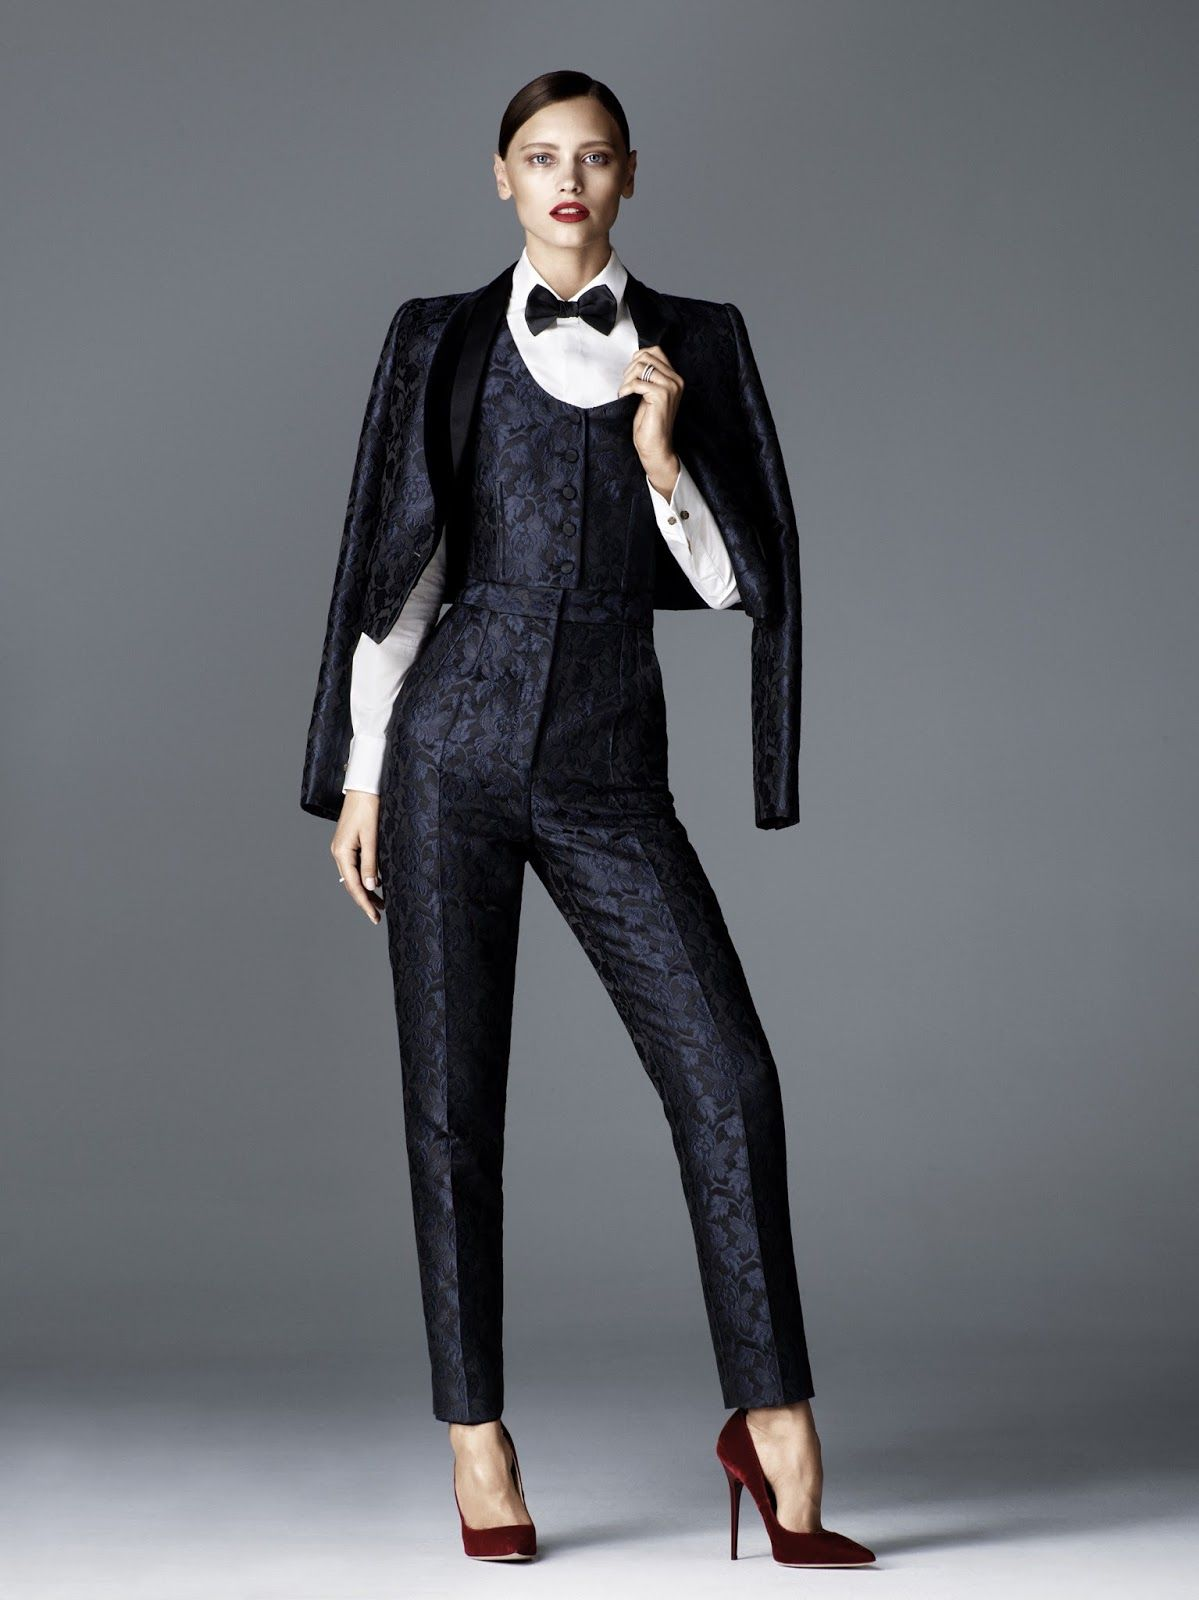 tuxedo junction: mila krasnoiarova by jimmy backius for elle germany november 2015 | visual optimism; fashion editorials, shows, campaigns & more!